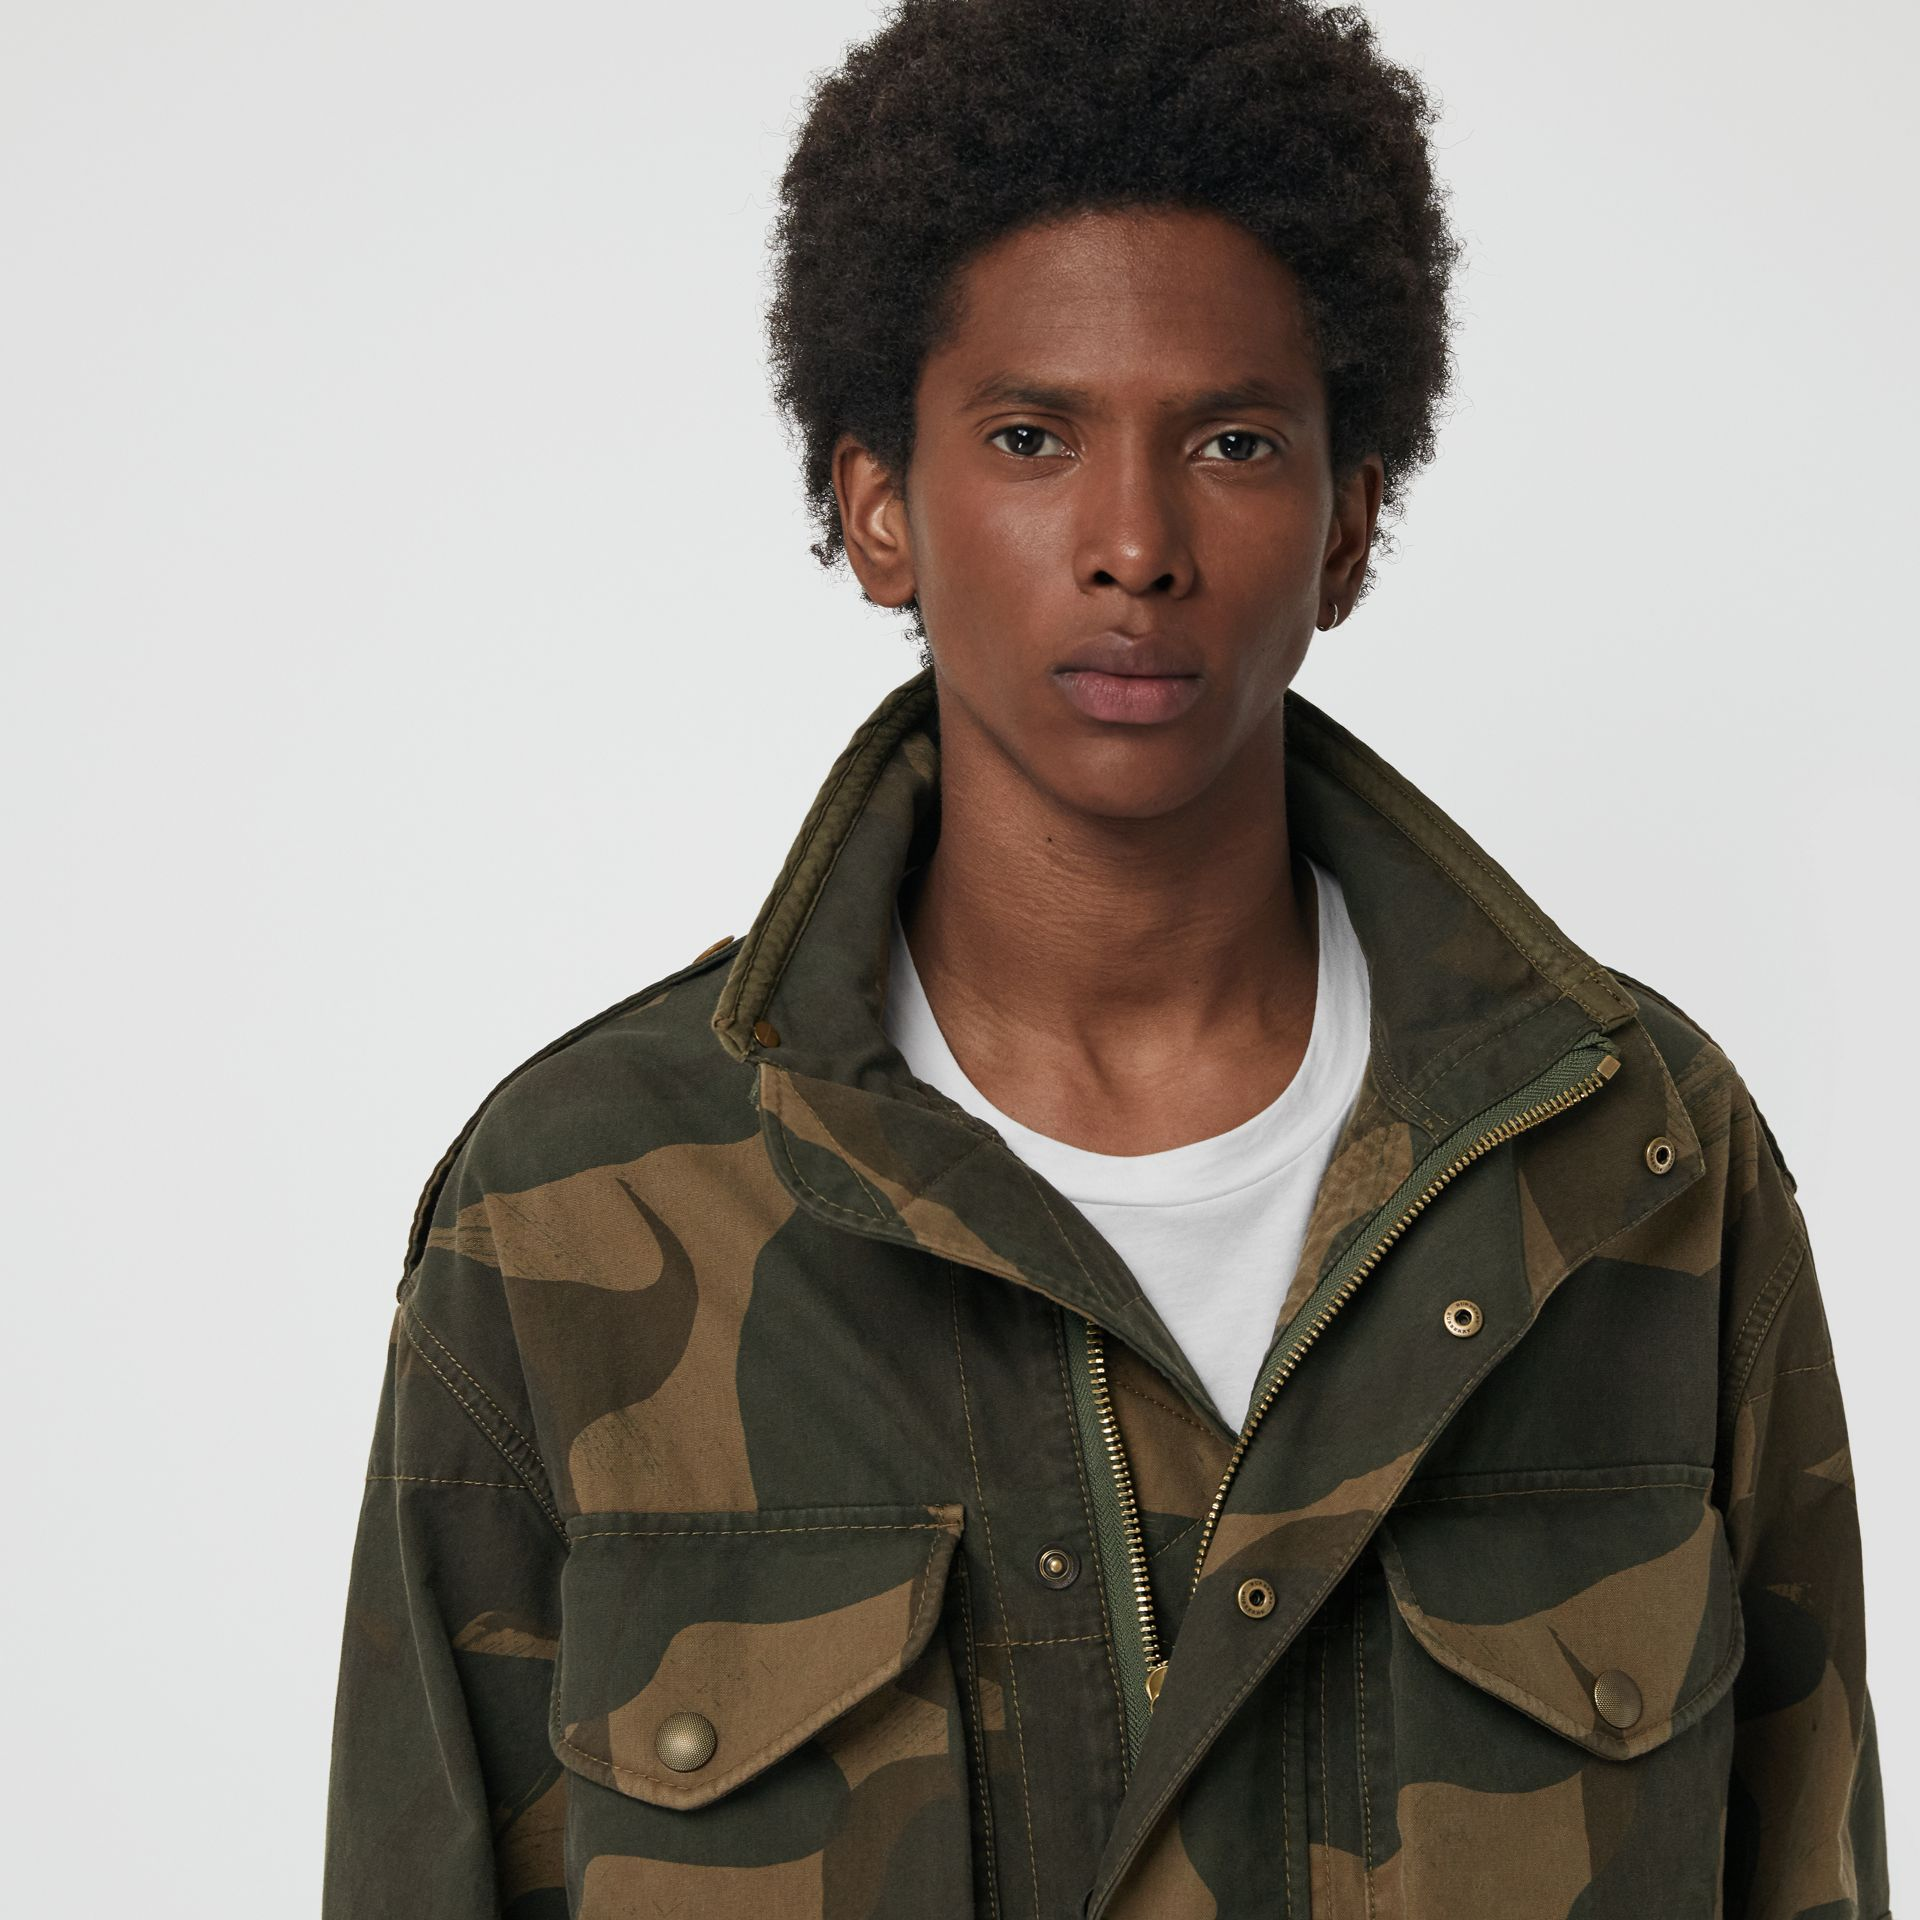 Camouflage Print Cotton Canvas Field Jacket in Khaki - Men | Burberry - gallery image 1